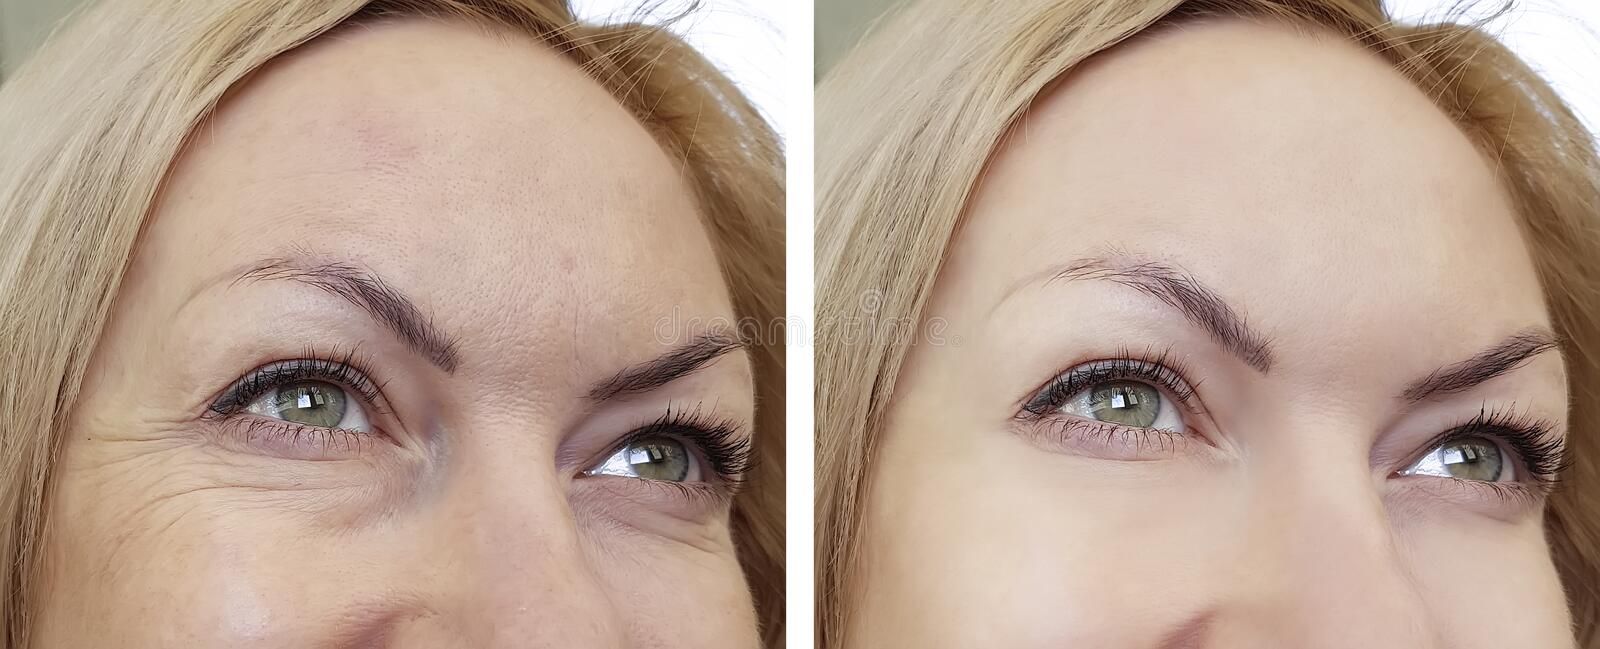 Face woman wrinkles before and after stock photography